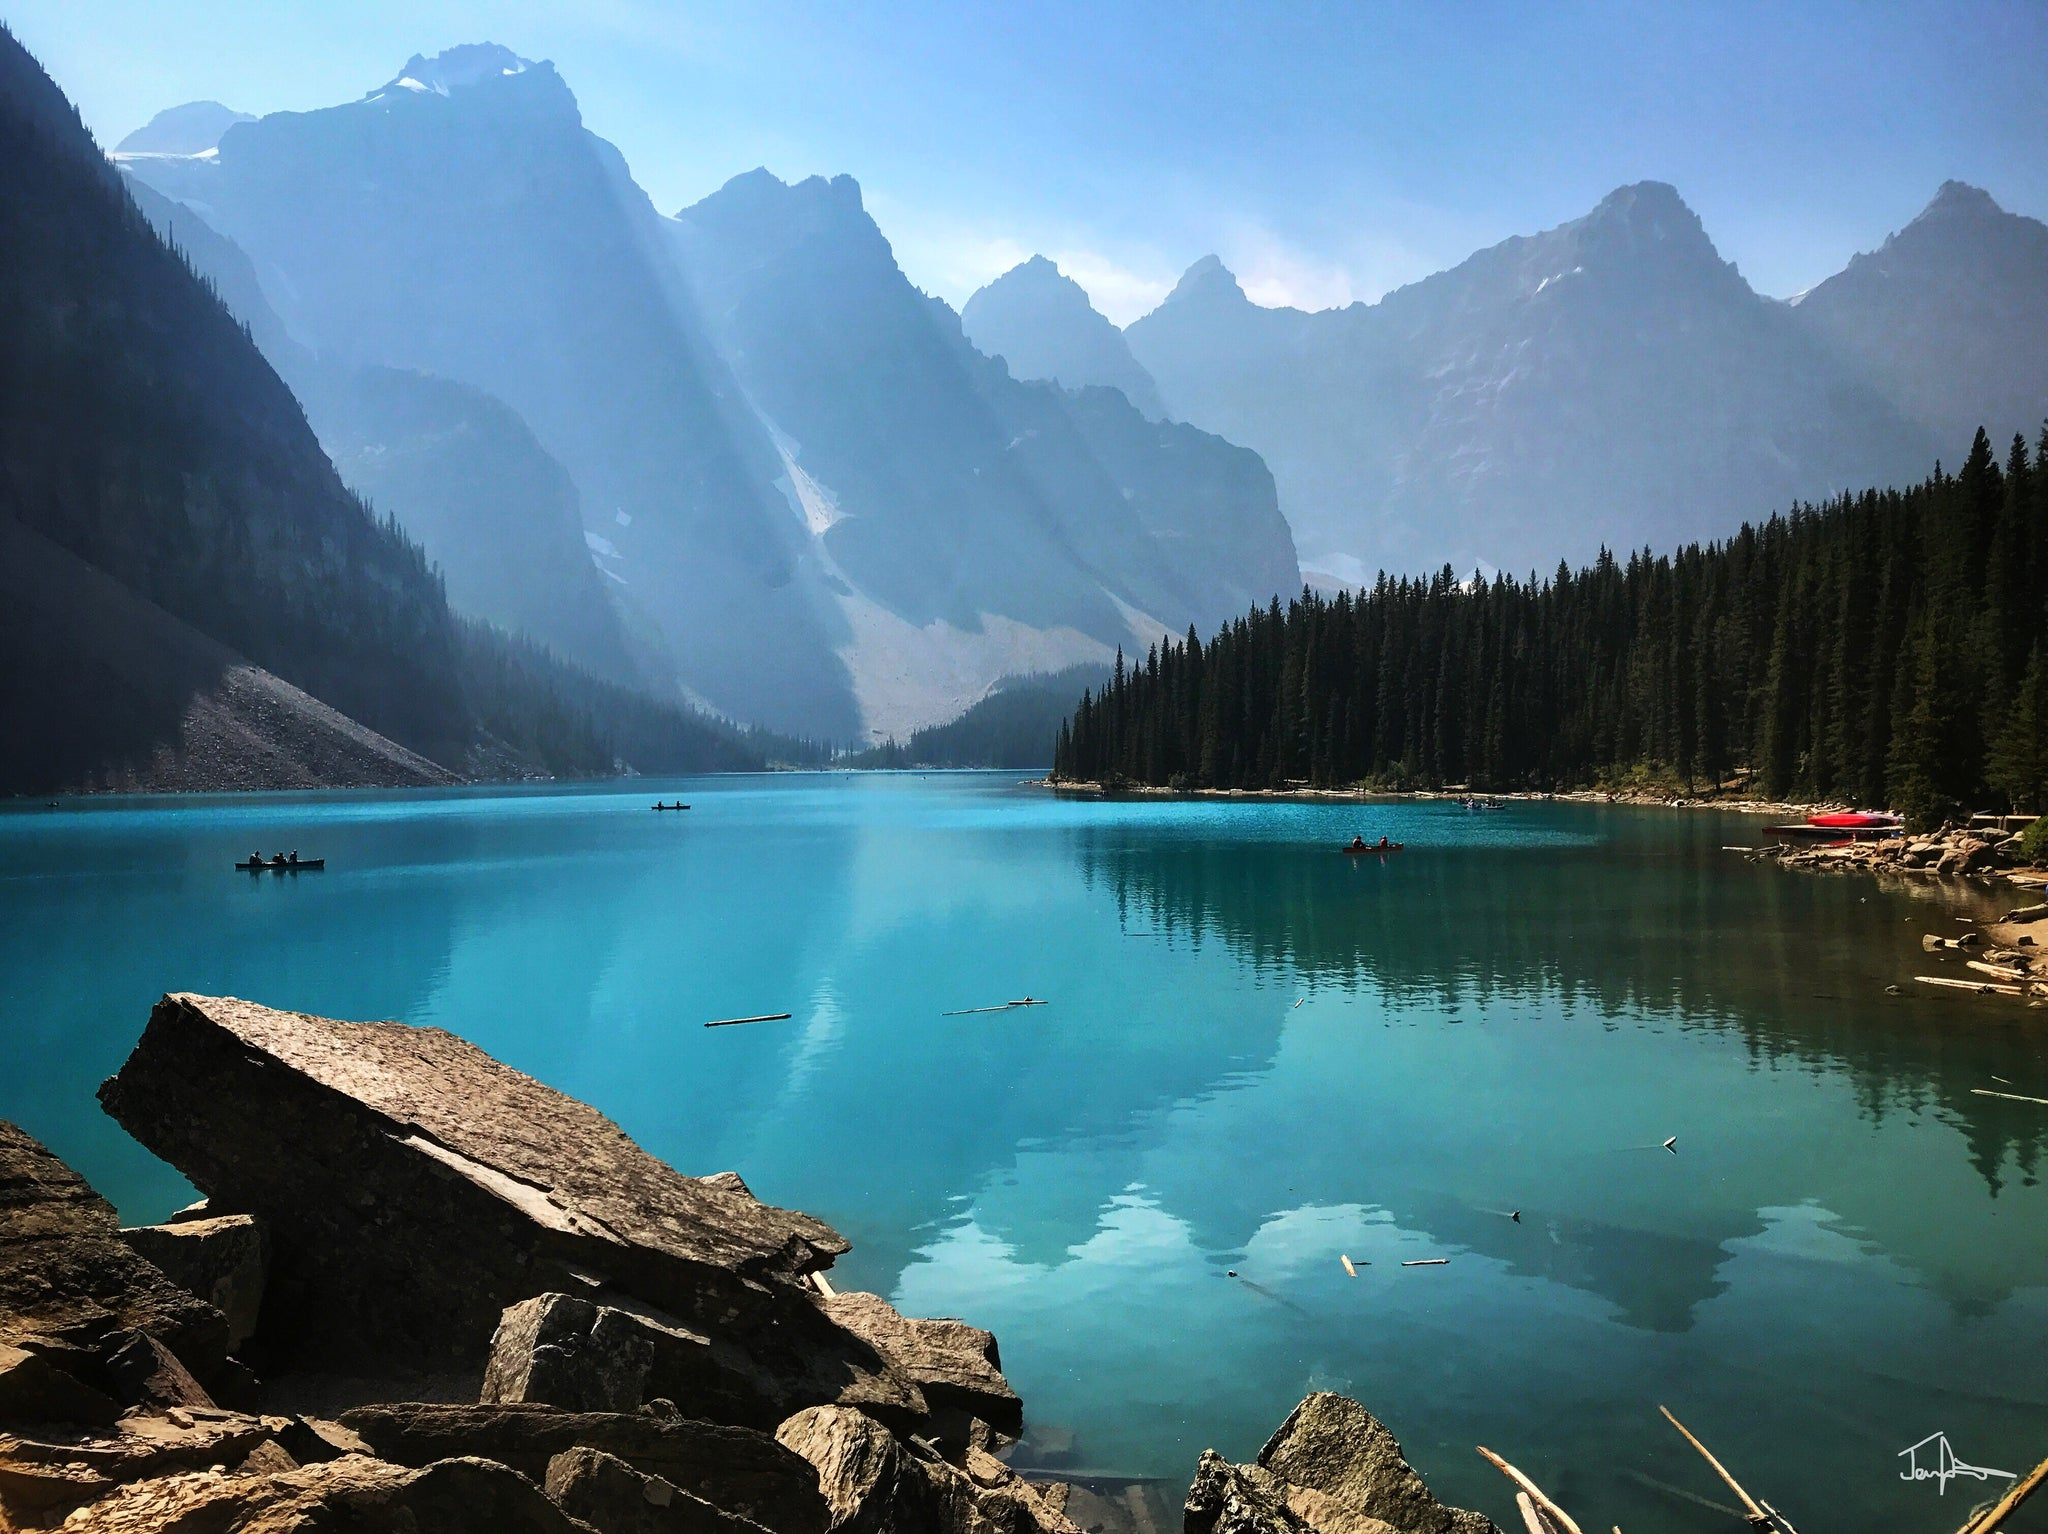 moraine lake, visit canada, proper adventure, landscape photography, live outdoors,